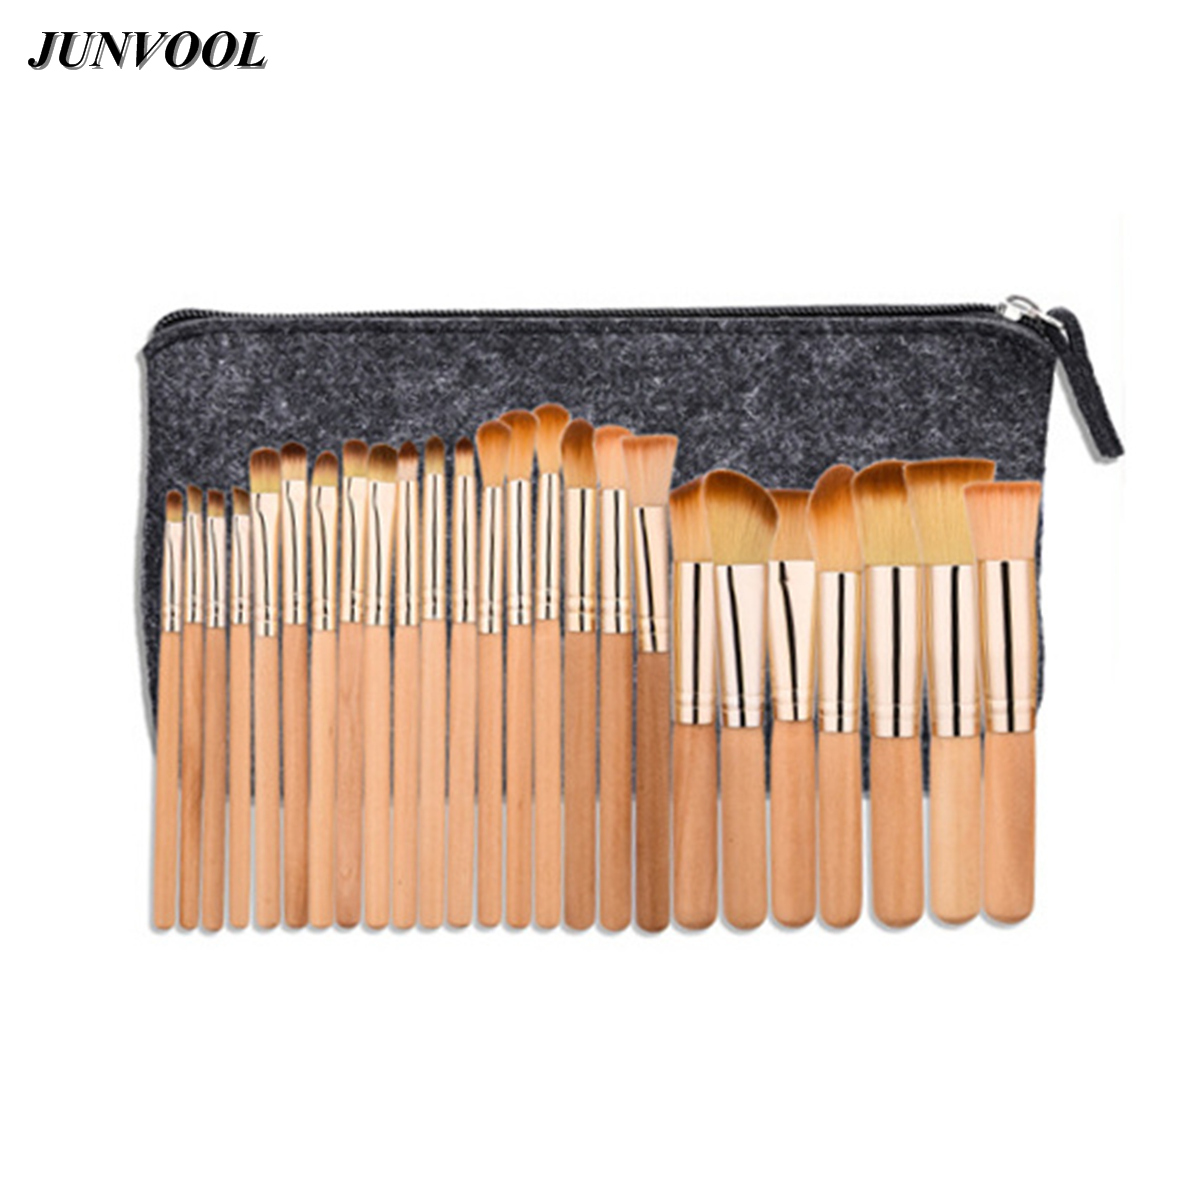 Brown Beauty Make Up Brushes Set 25pcs Foundation Blusher Powder Eyeshadow Blending Eyebrow Eyeliner Lip Brush with Makeup Bag zipower pm 5148